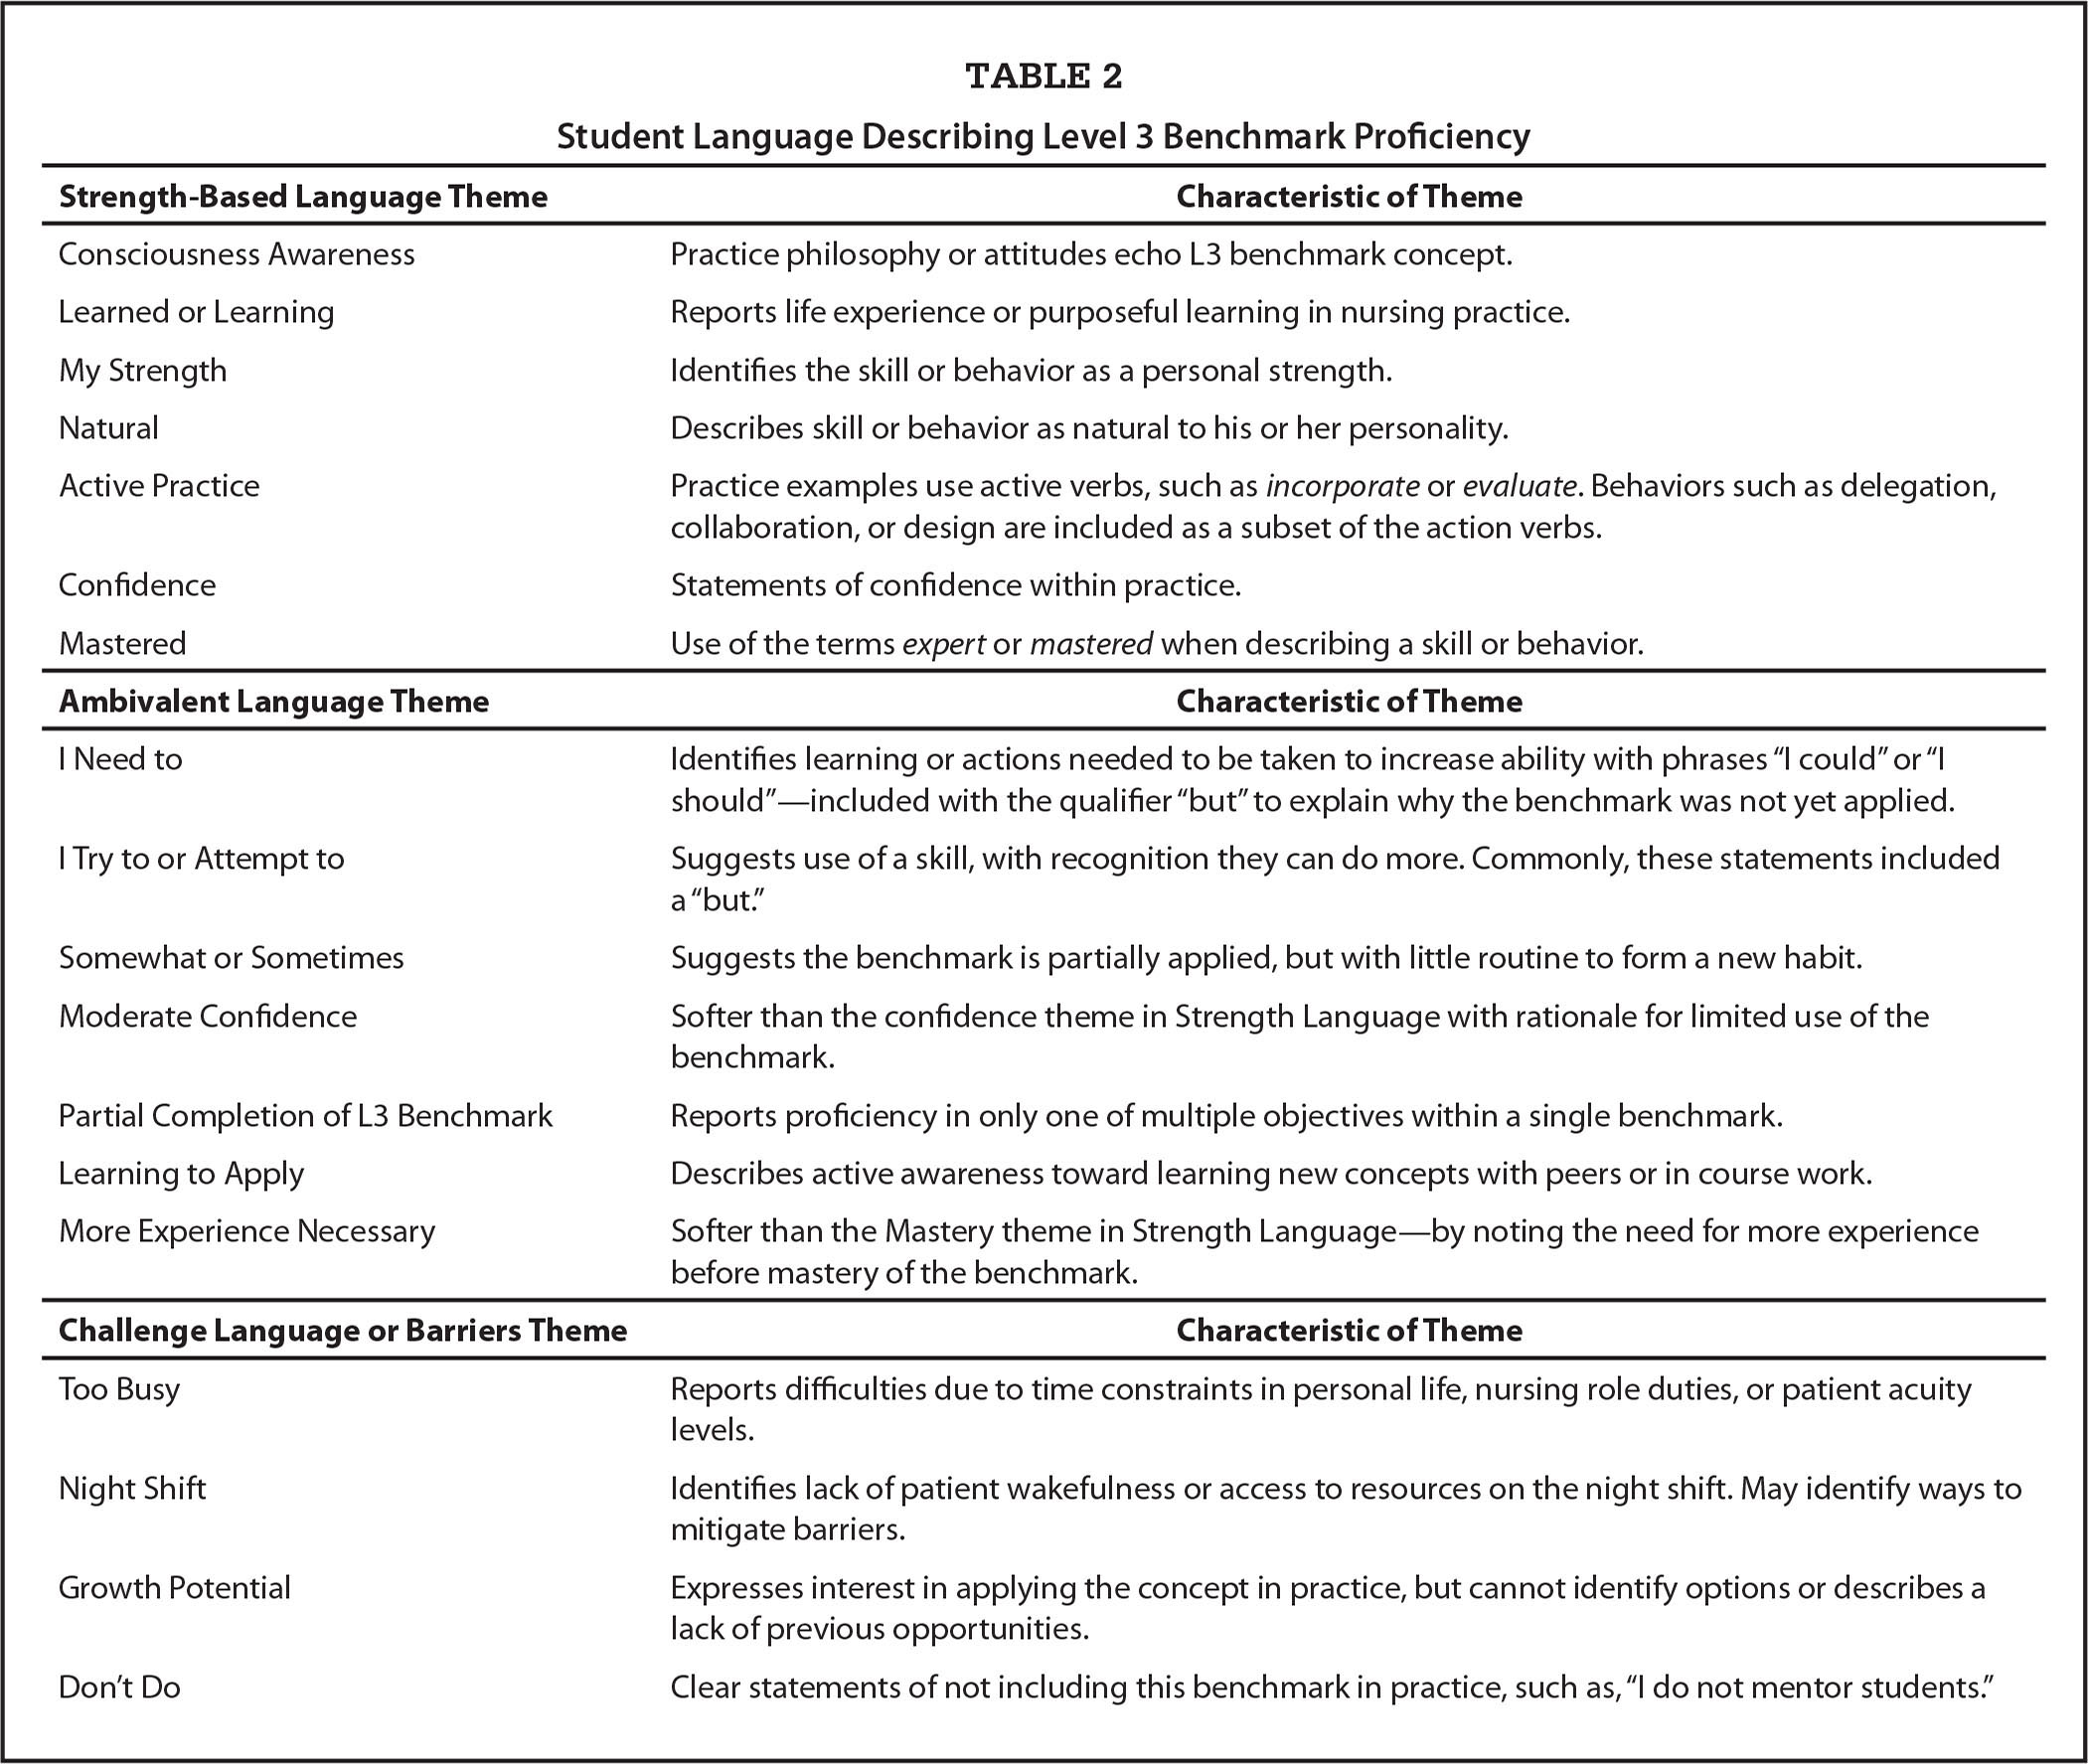 Student Language Describing Level 3 Benchmark Proficiency